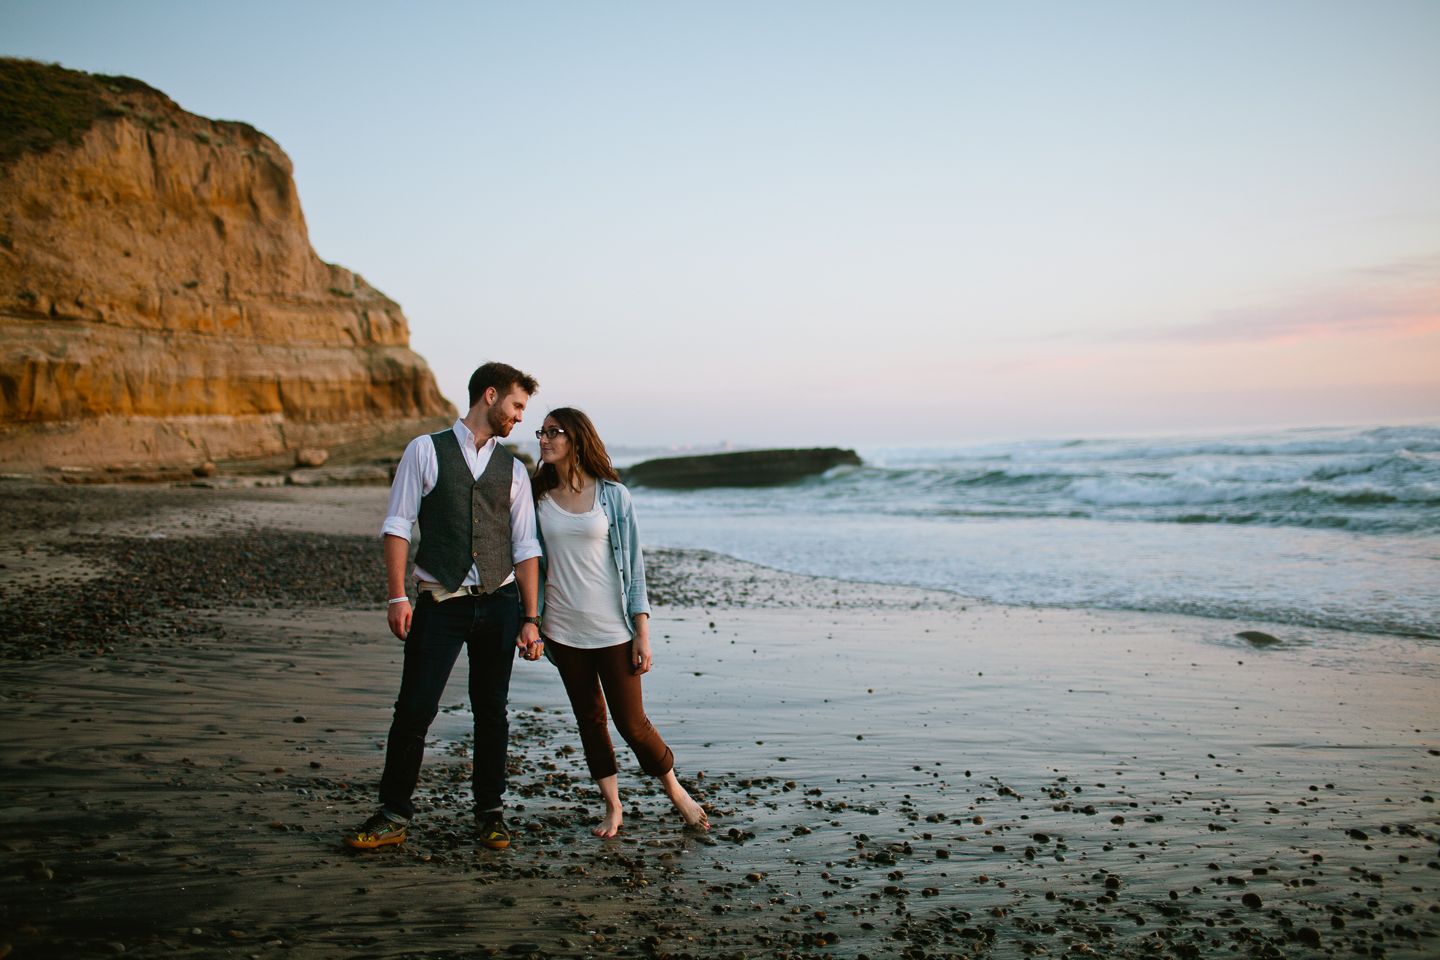 Torrey pines beach engagement